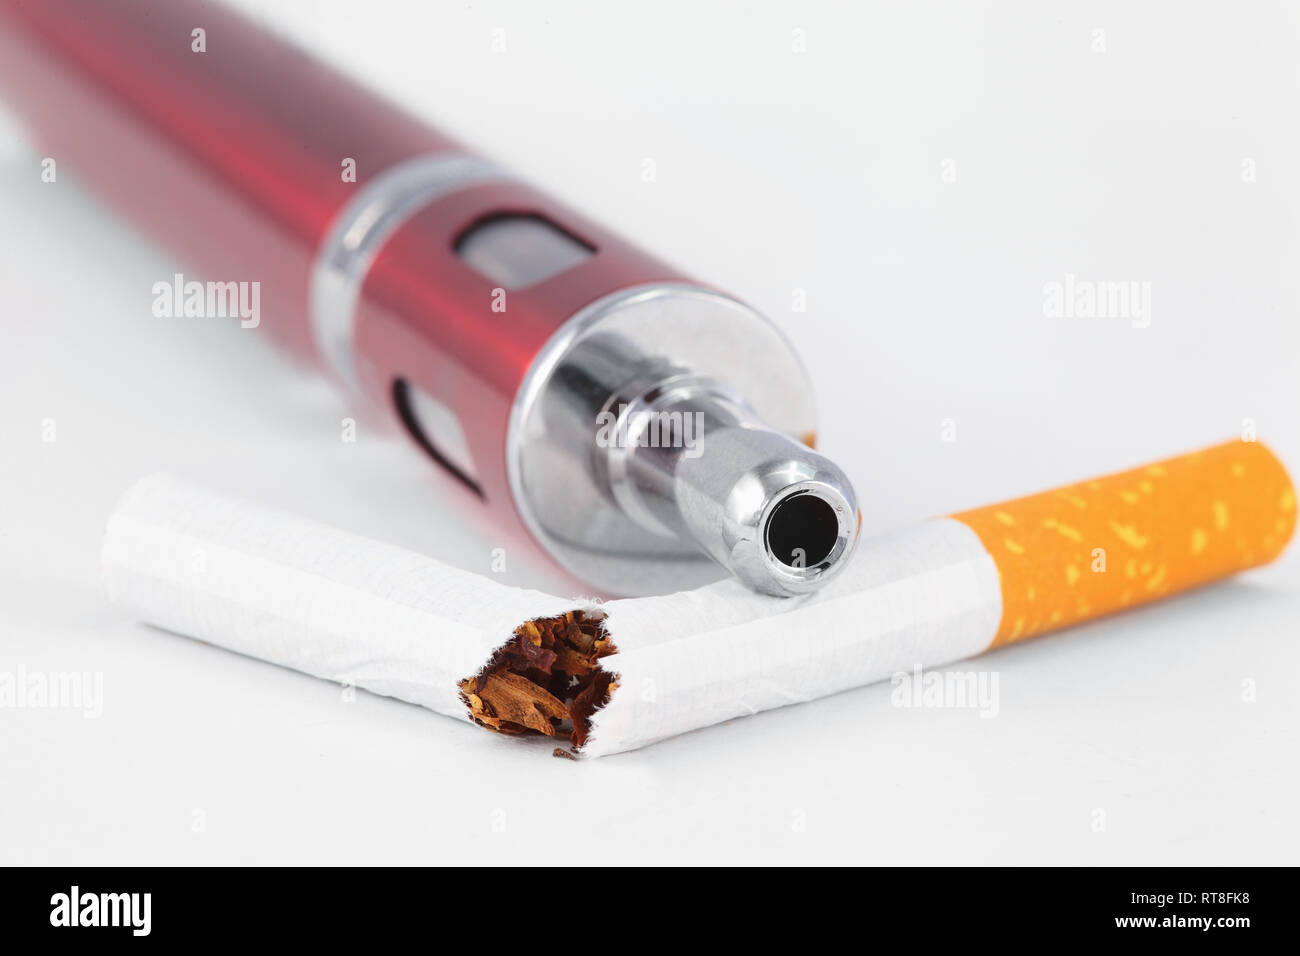 e-zigarette and a broken tobacco cigarette - Stock Image